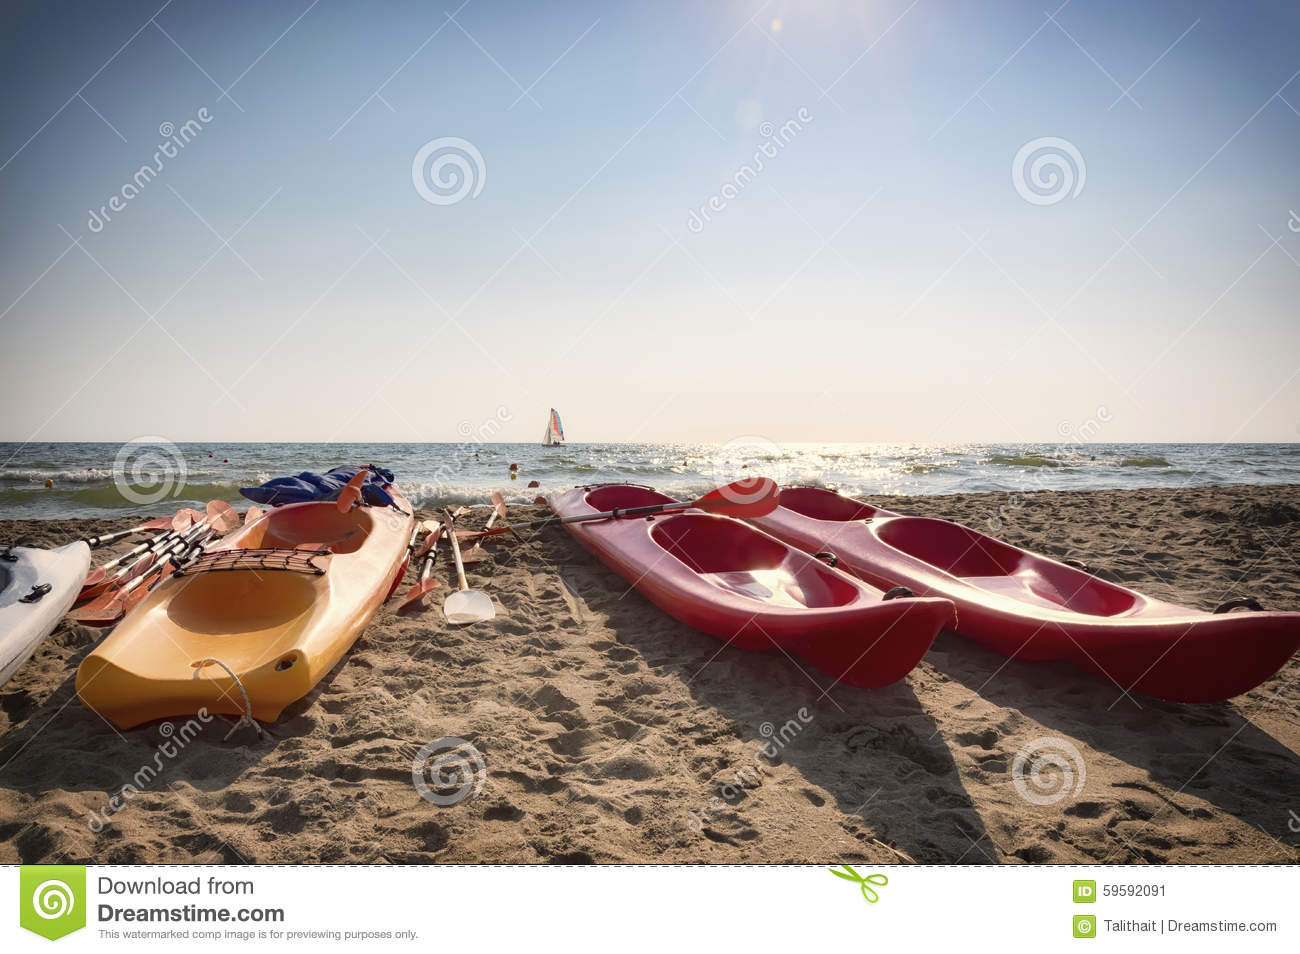 Colorful Kayak And Sailboat Stock Image - Image of italy